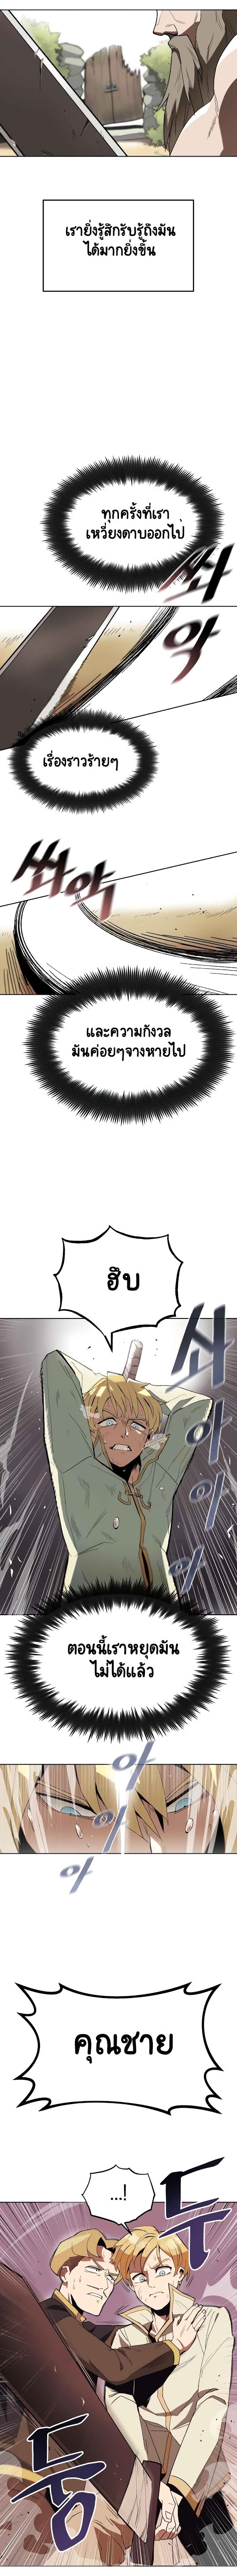 The Lazy Prince Becomes A Genius - หน้า 9